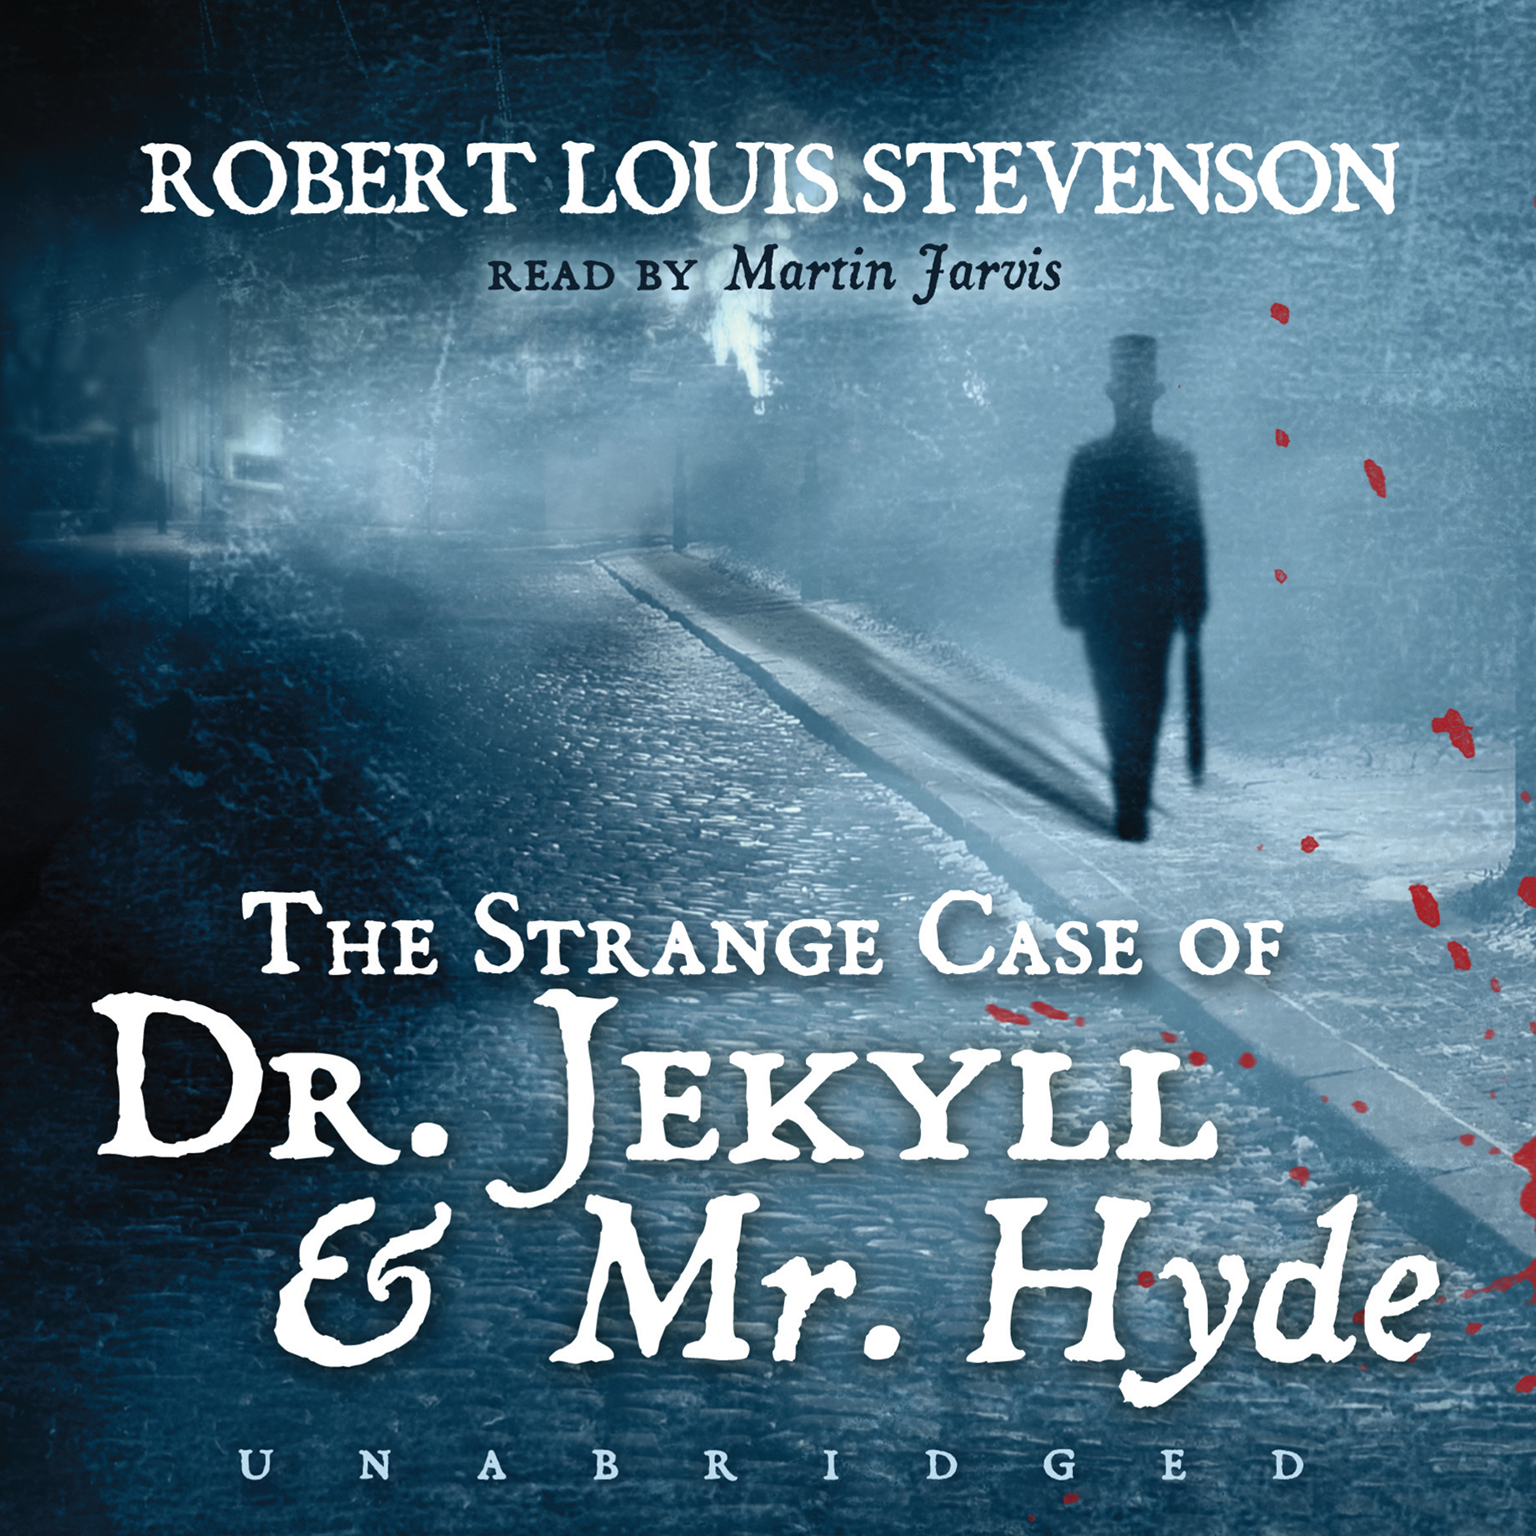 dr jekyll mr hyde essay duality This duality in humans is the not quite so obvious physical meaning in robert louis stevenson's story 'dr jekyll and mr hyde ' the much more obvious, emotional meaning is that which makes this book a fantastic read.